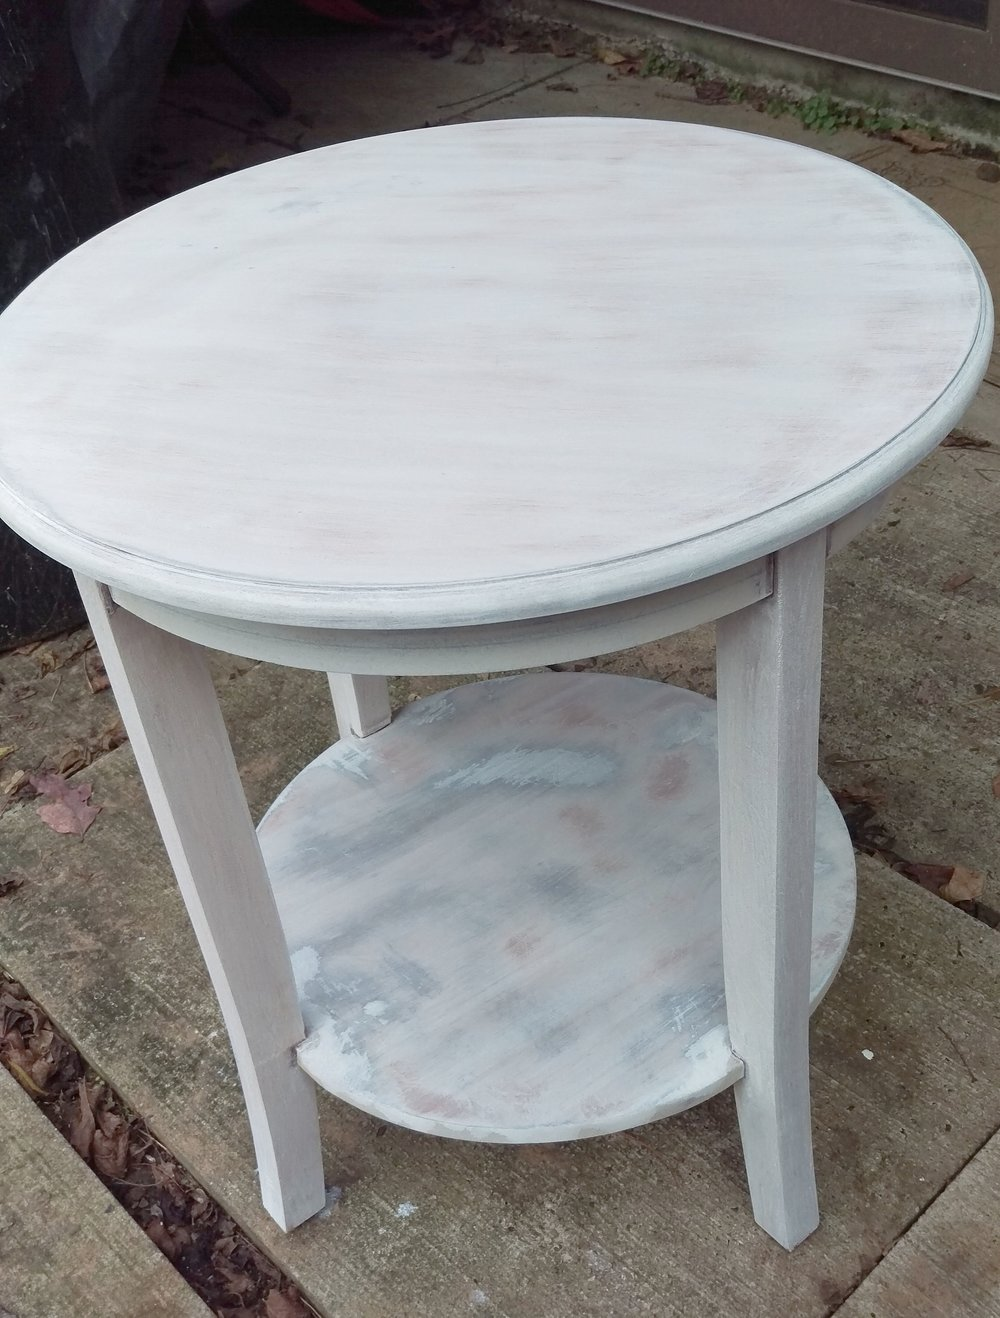 The table after the first coat of whitewash